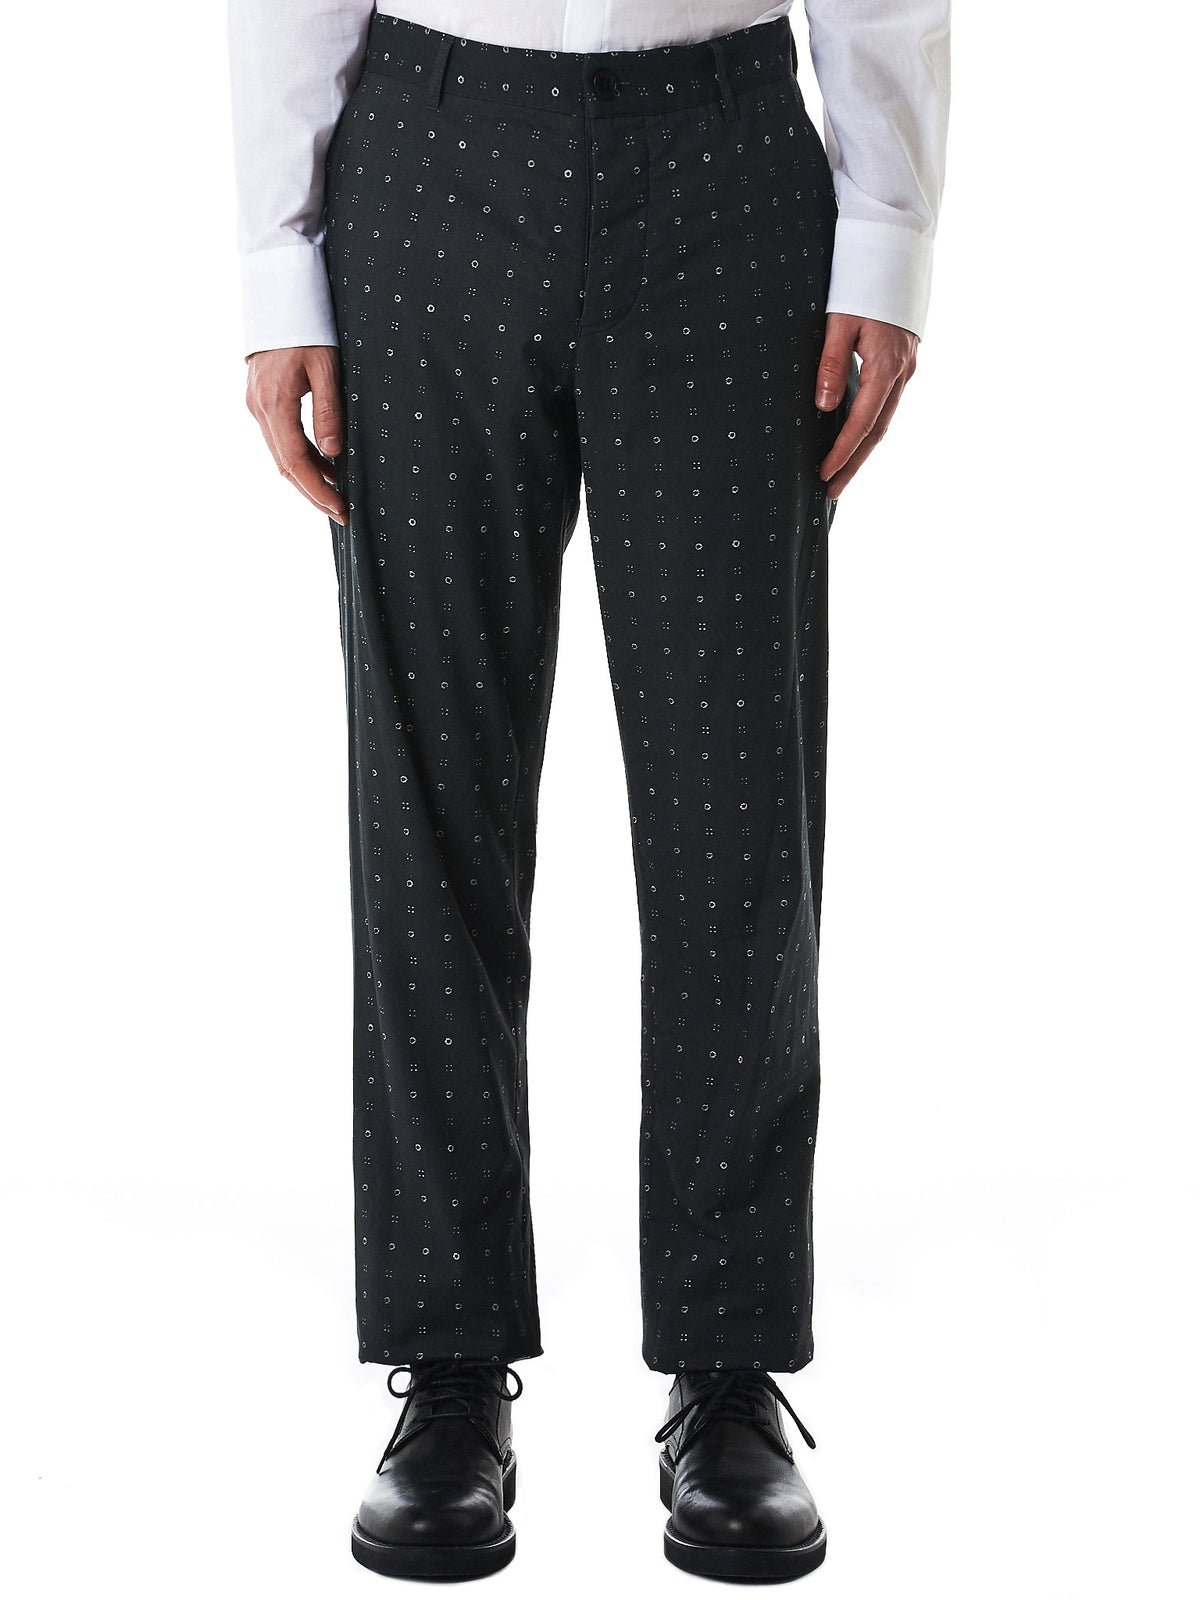 Graphic Printed Trousers (1708-3407-121-099)